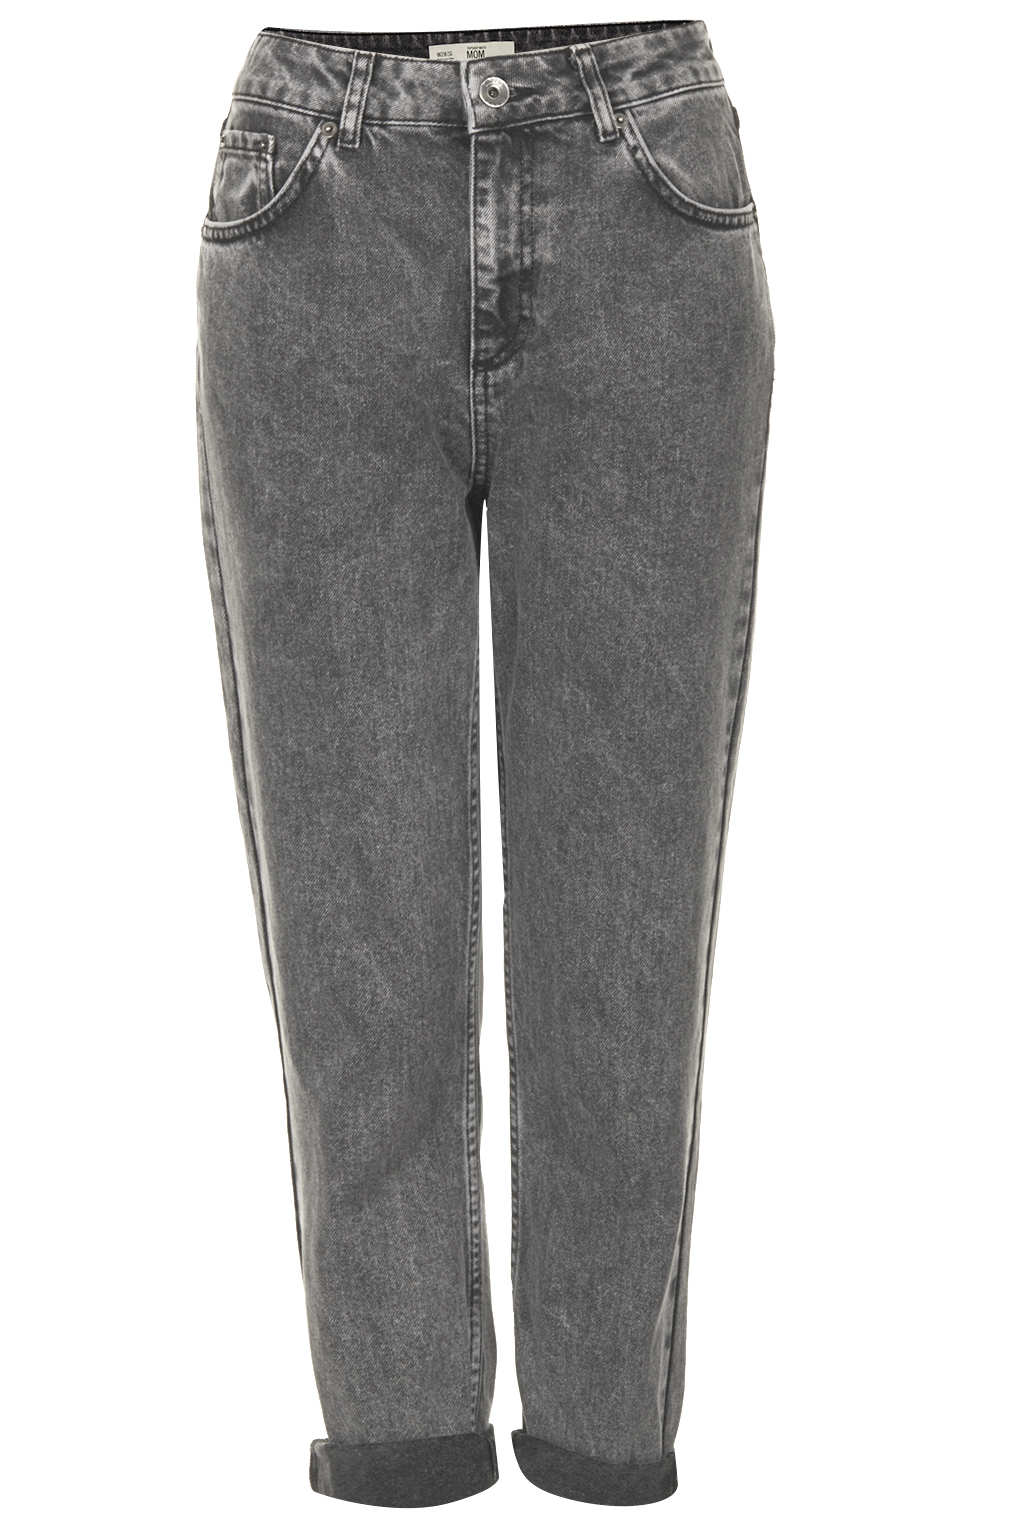 Topshop Petite Moto Black Wash Mom Jeans In Gray Lyst